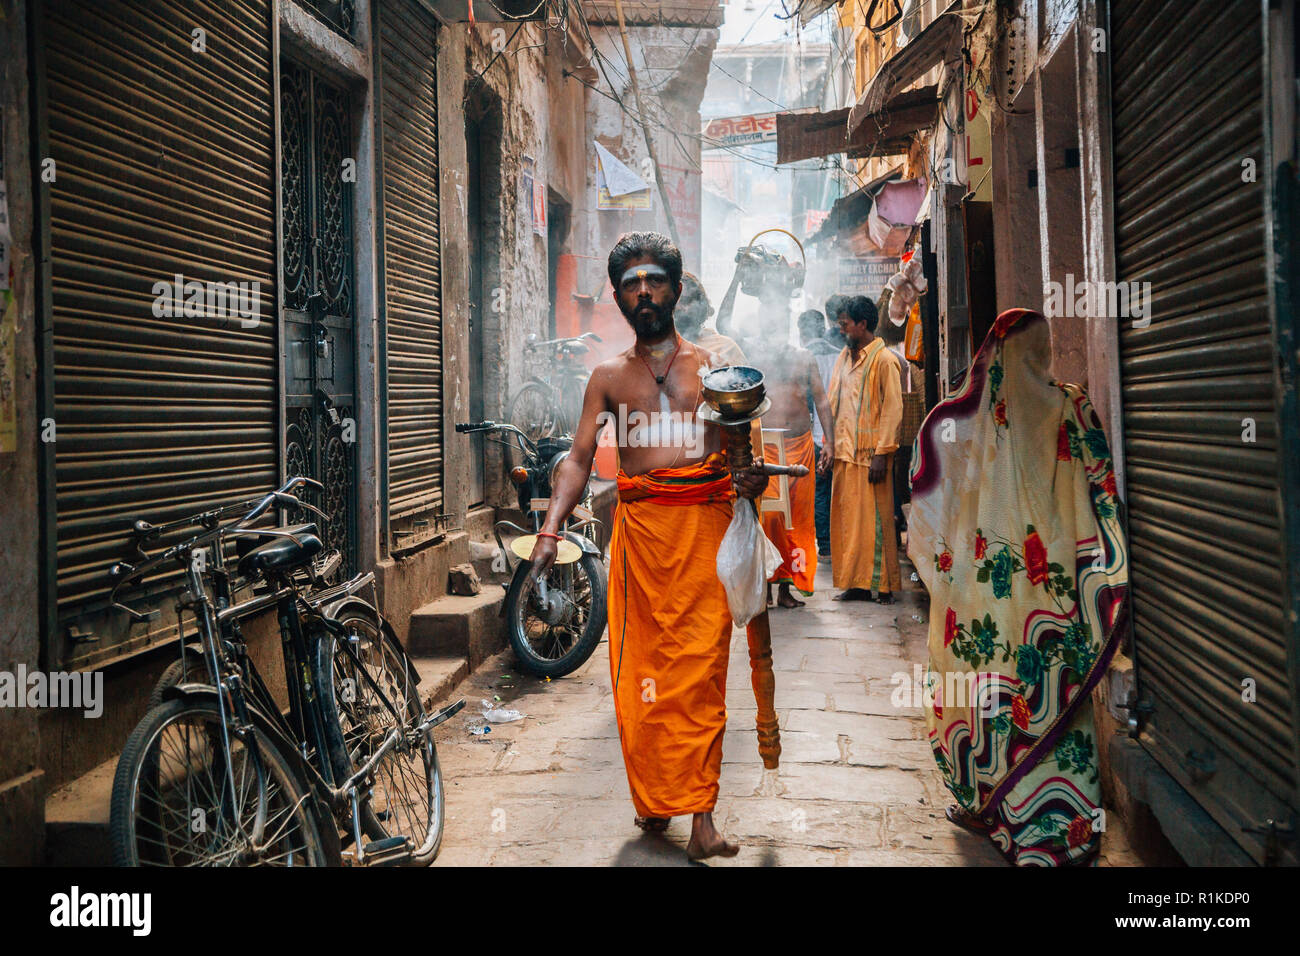 Varanasi, India - November 23, 2017 : Hindu perform worship ceremony at Bangali Tola old street Stock Photo